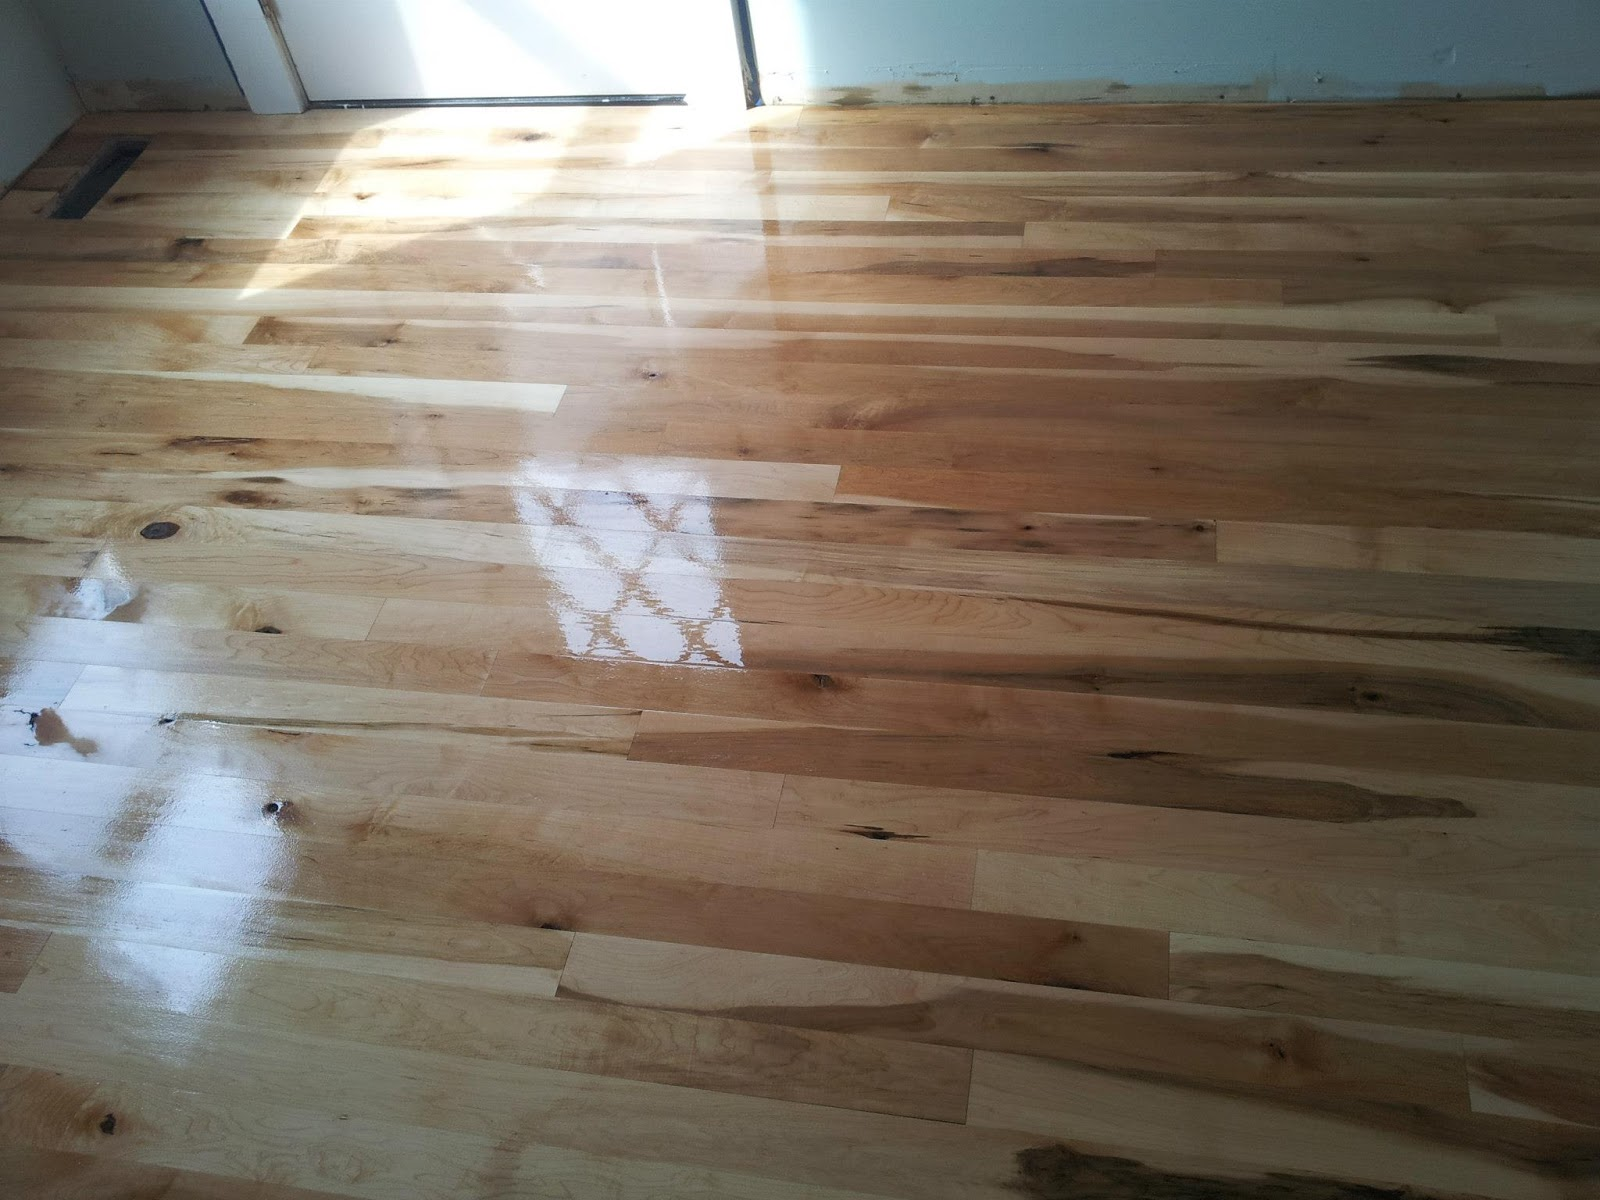 5 Rooms And 2 Stairs This Hardwood Floors Needed Serious